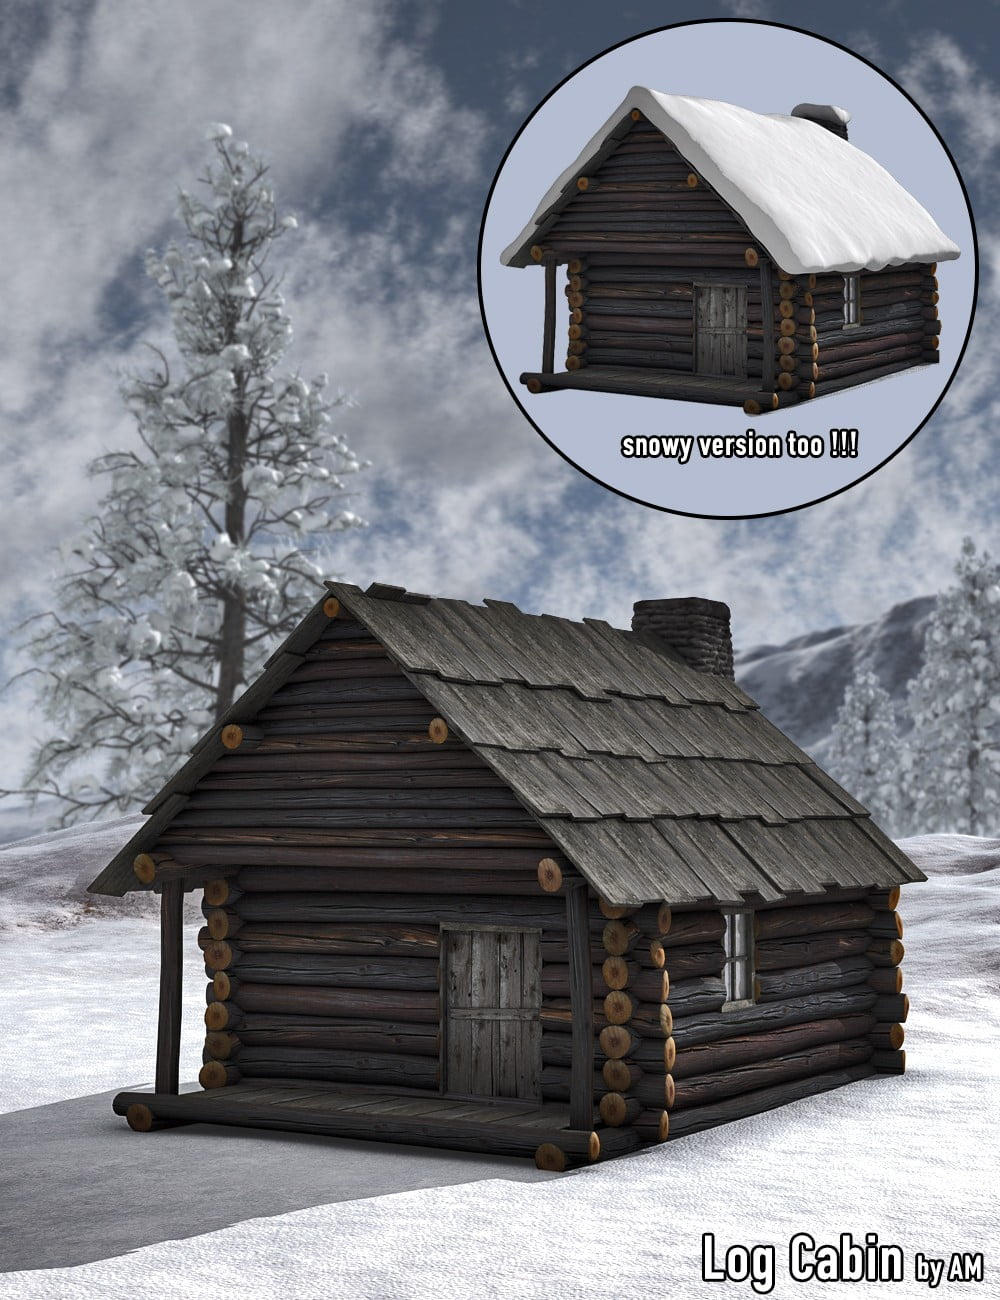 Log Cabin by AM